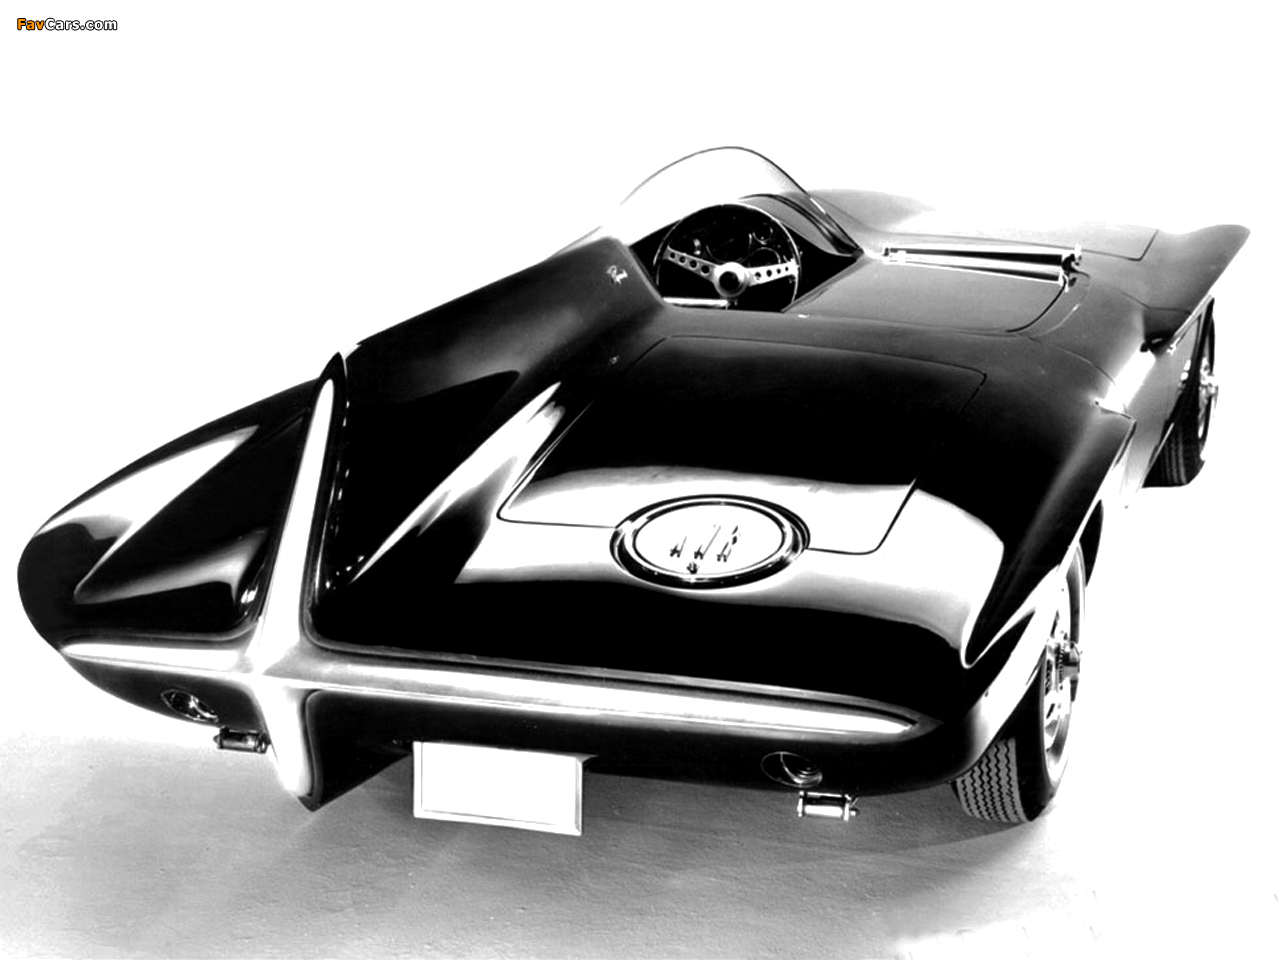 Plymouth XNR Concept Car 1960 images (1280 x 960)